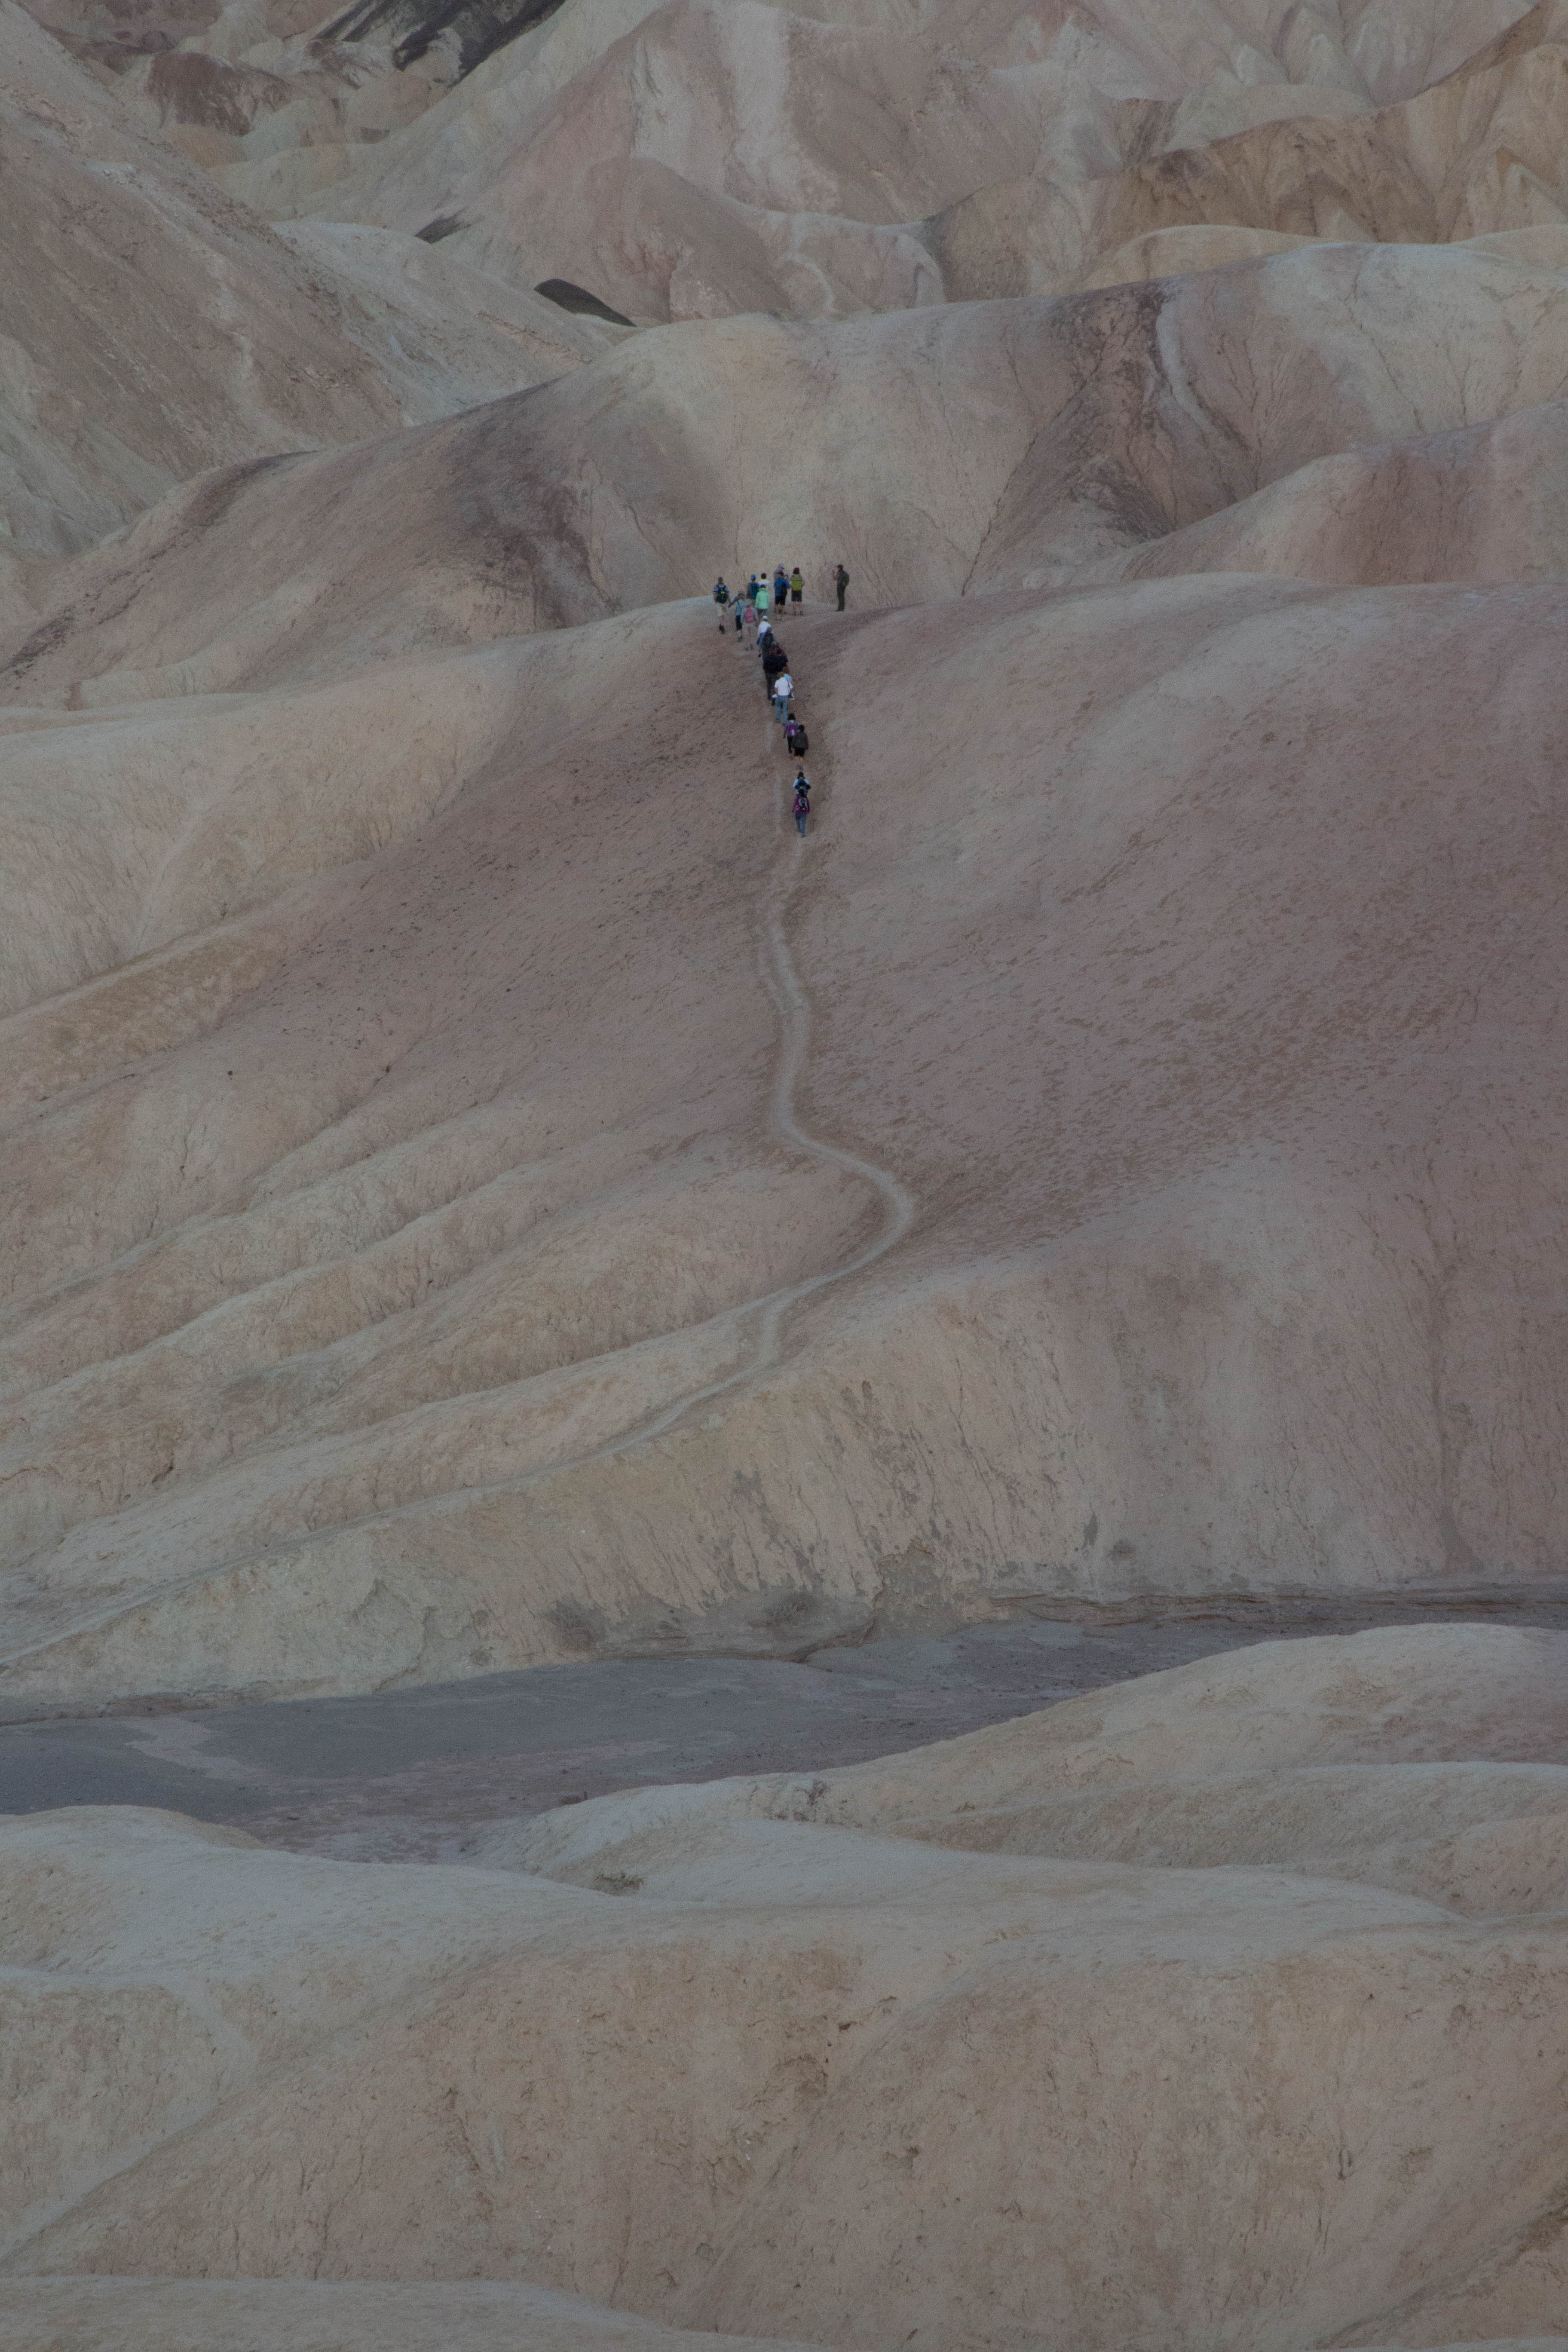 A group of hikers travel up a path through highly eroded desert hills.